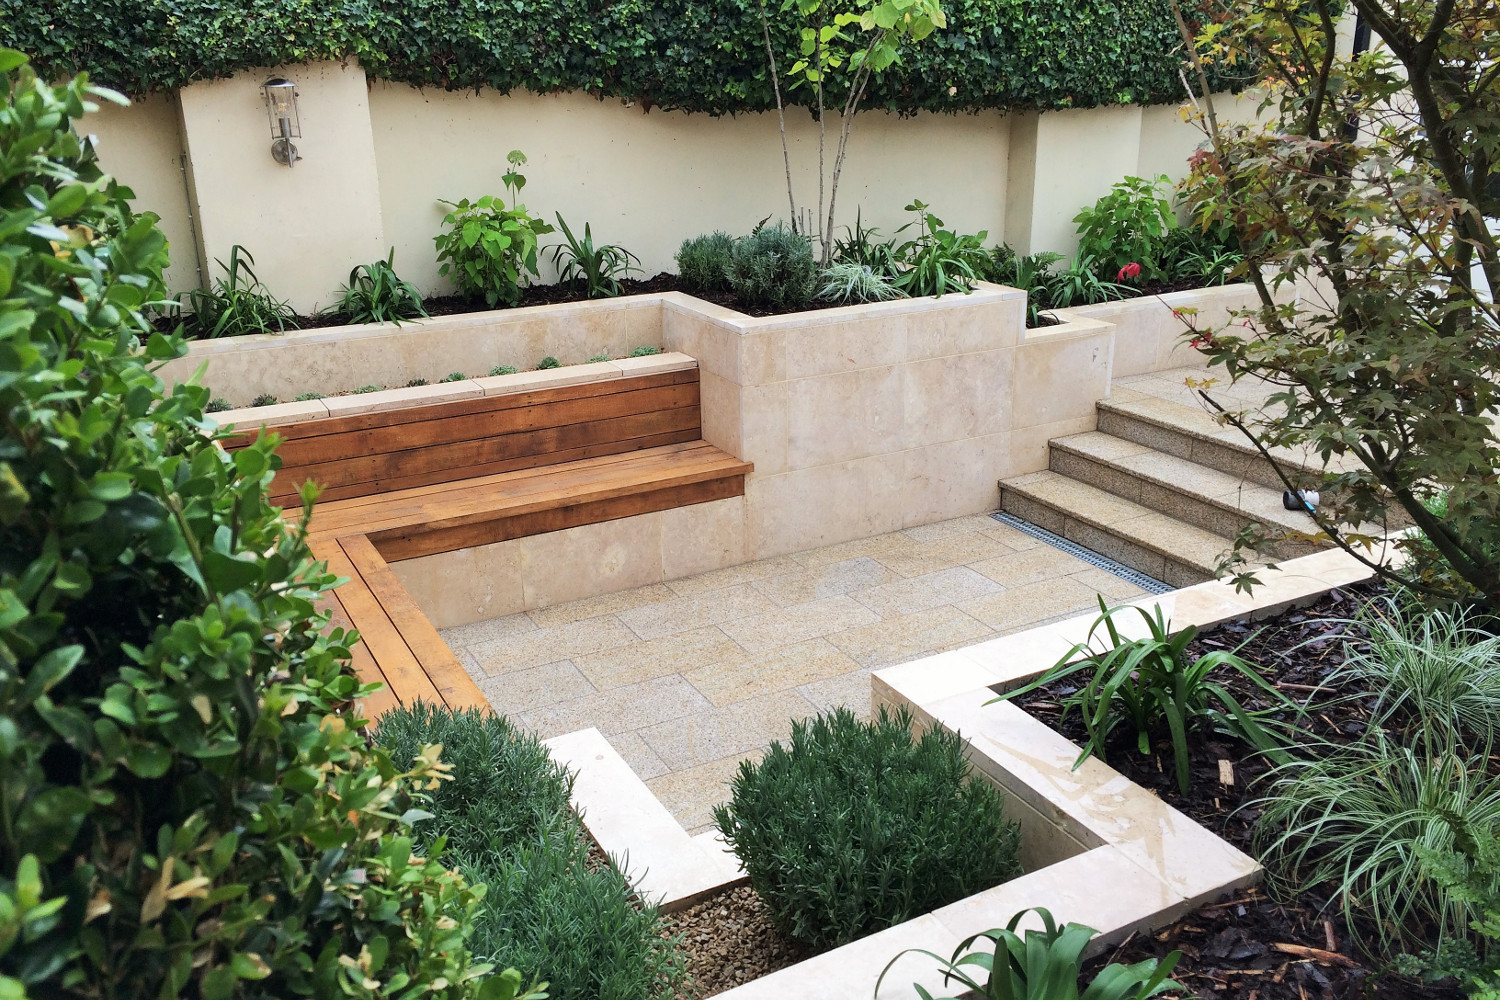 tim-austen-garden-design-stylish-sanctuary-glasnevin-5